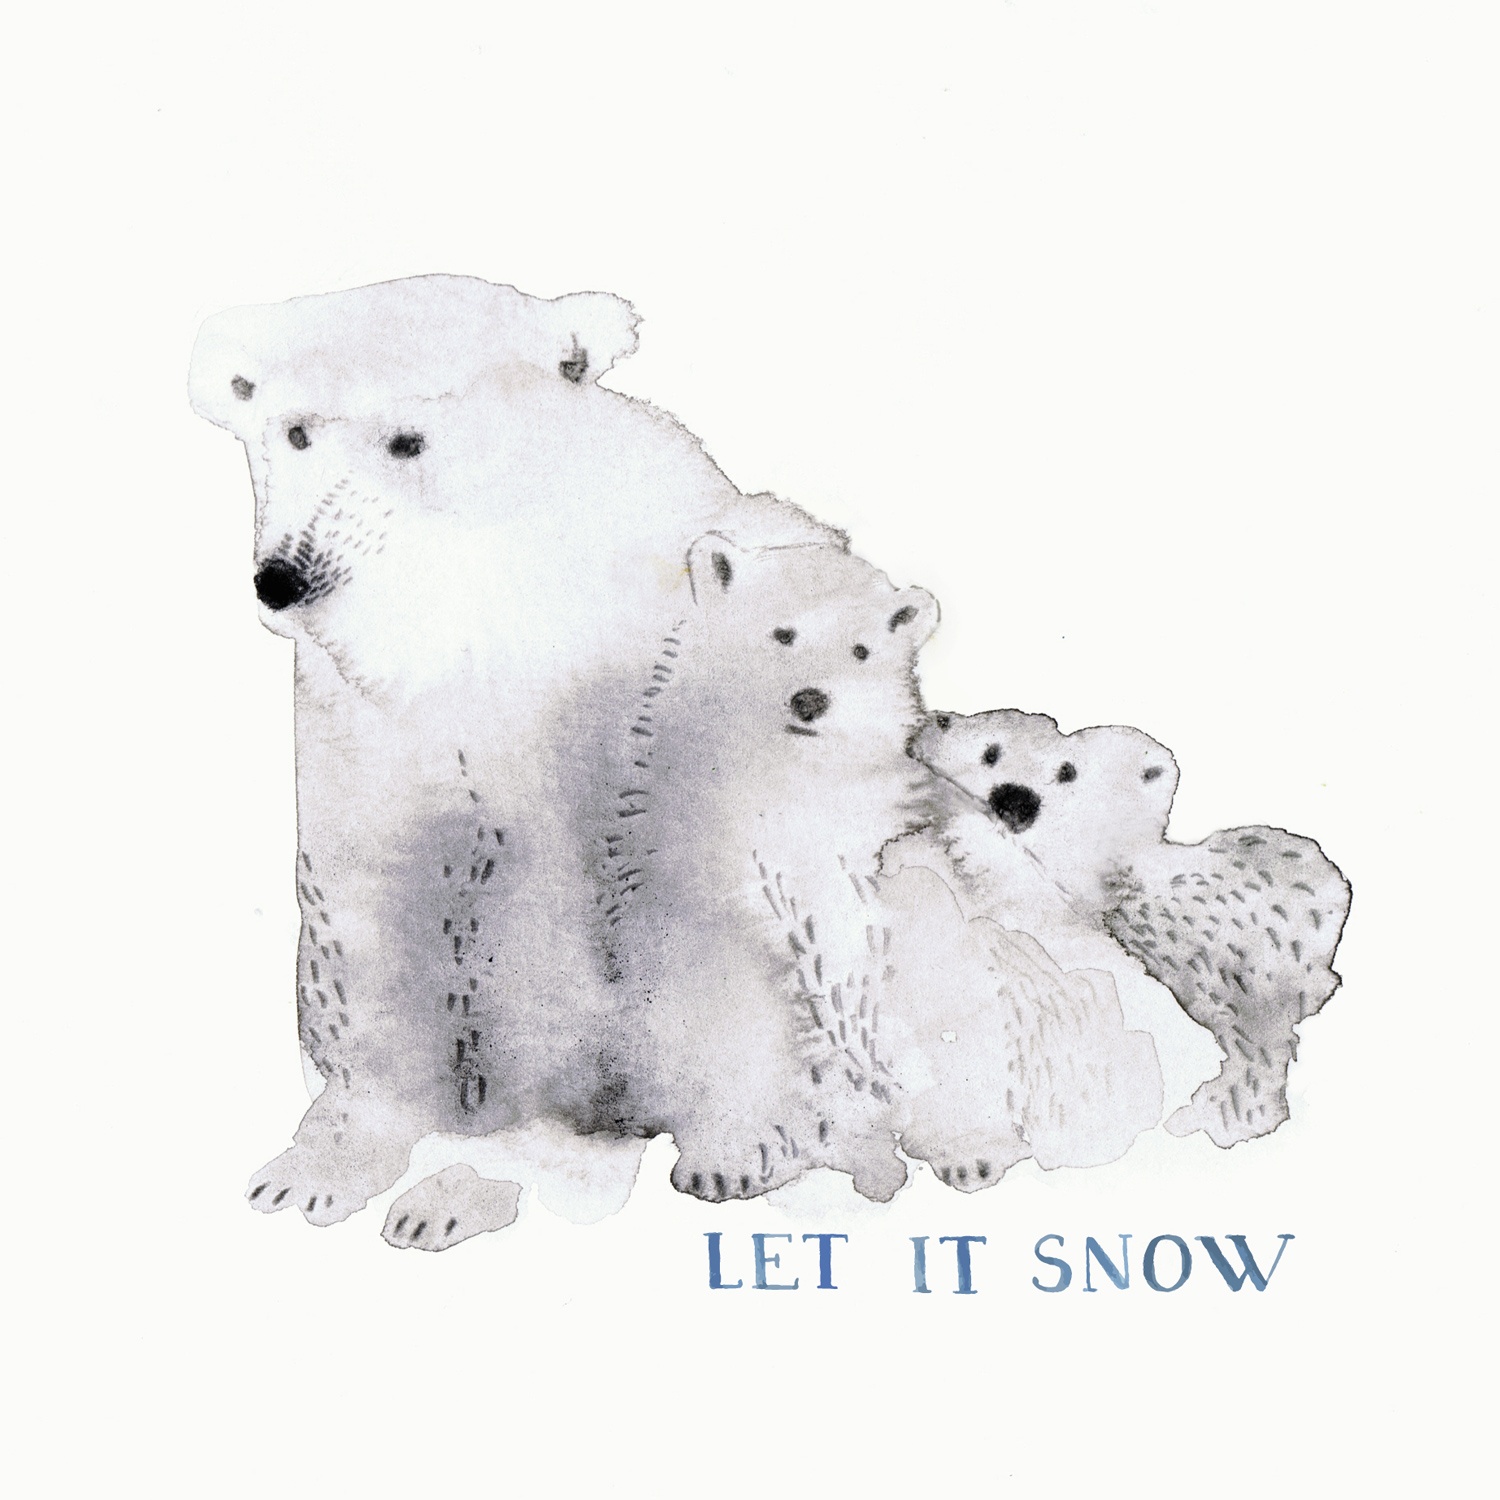 polarbears_let_it_snow-01.jpg